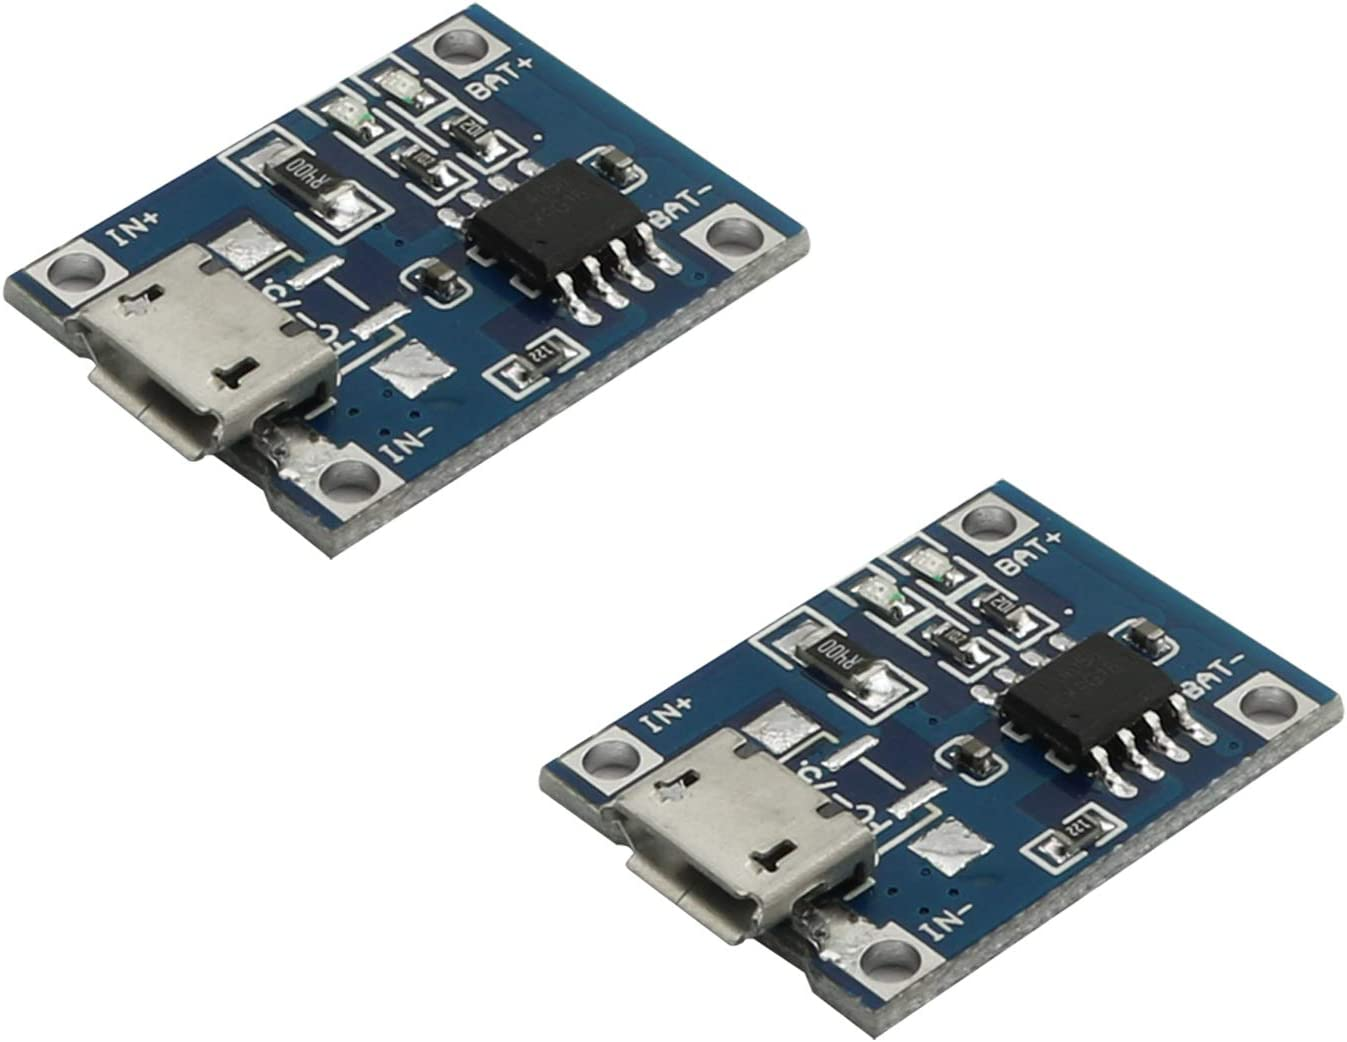 Maxmoral 2pcs TP4056 Lipo Battery Charging Board Micro USB Port Lithium Battery Charger Module 1A